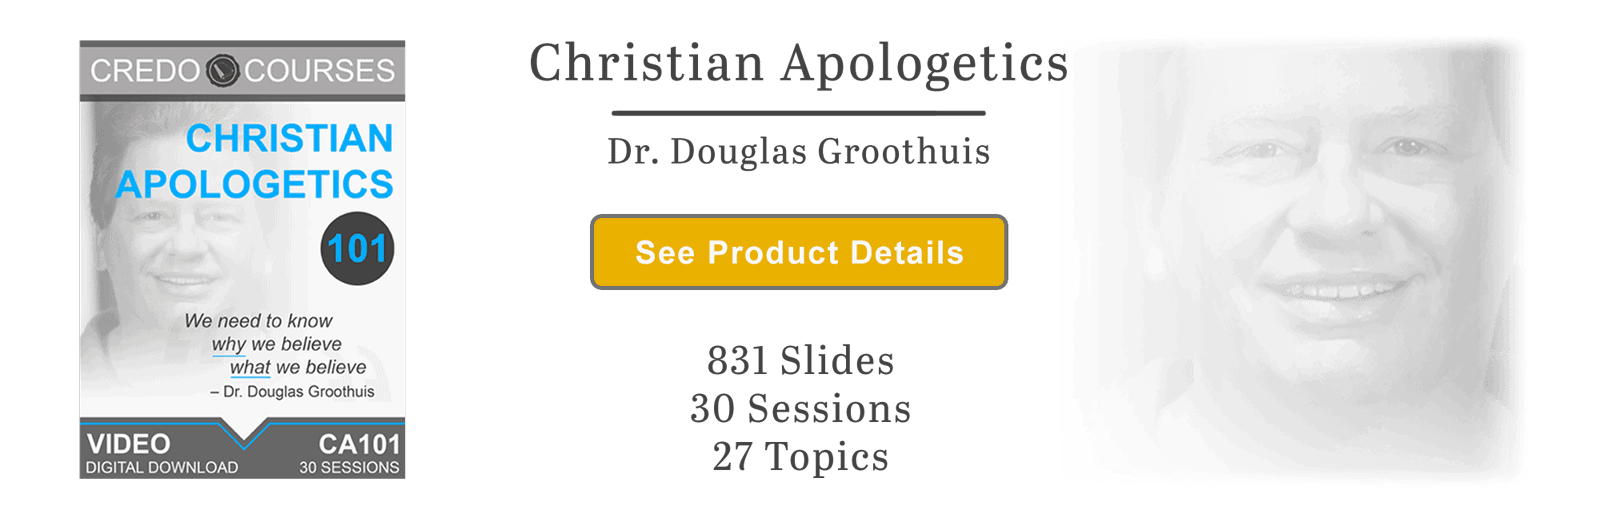 Christian Apologetics by Douglas Groothuis